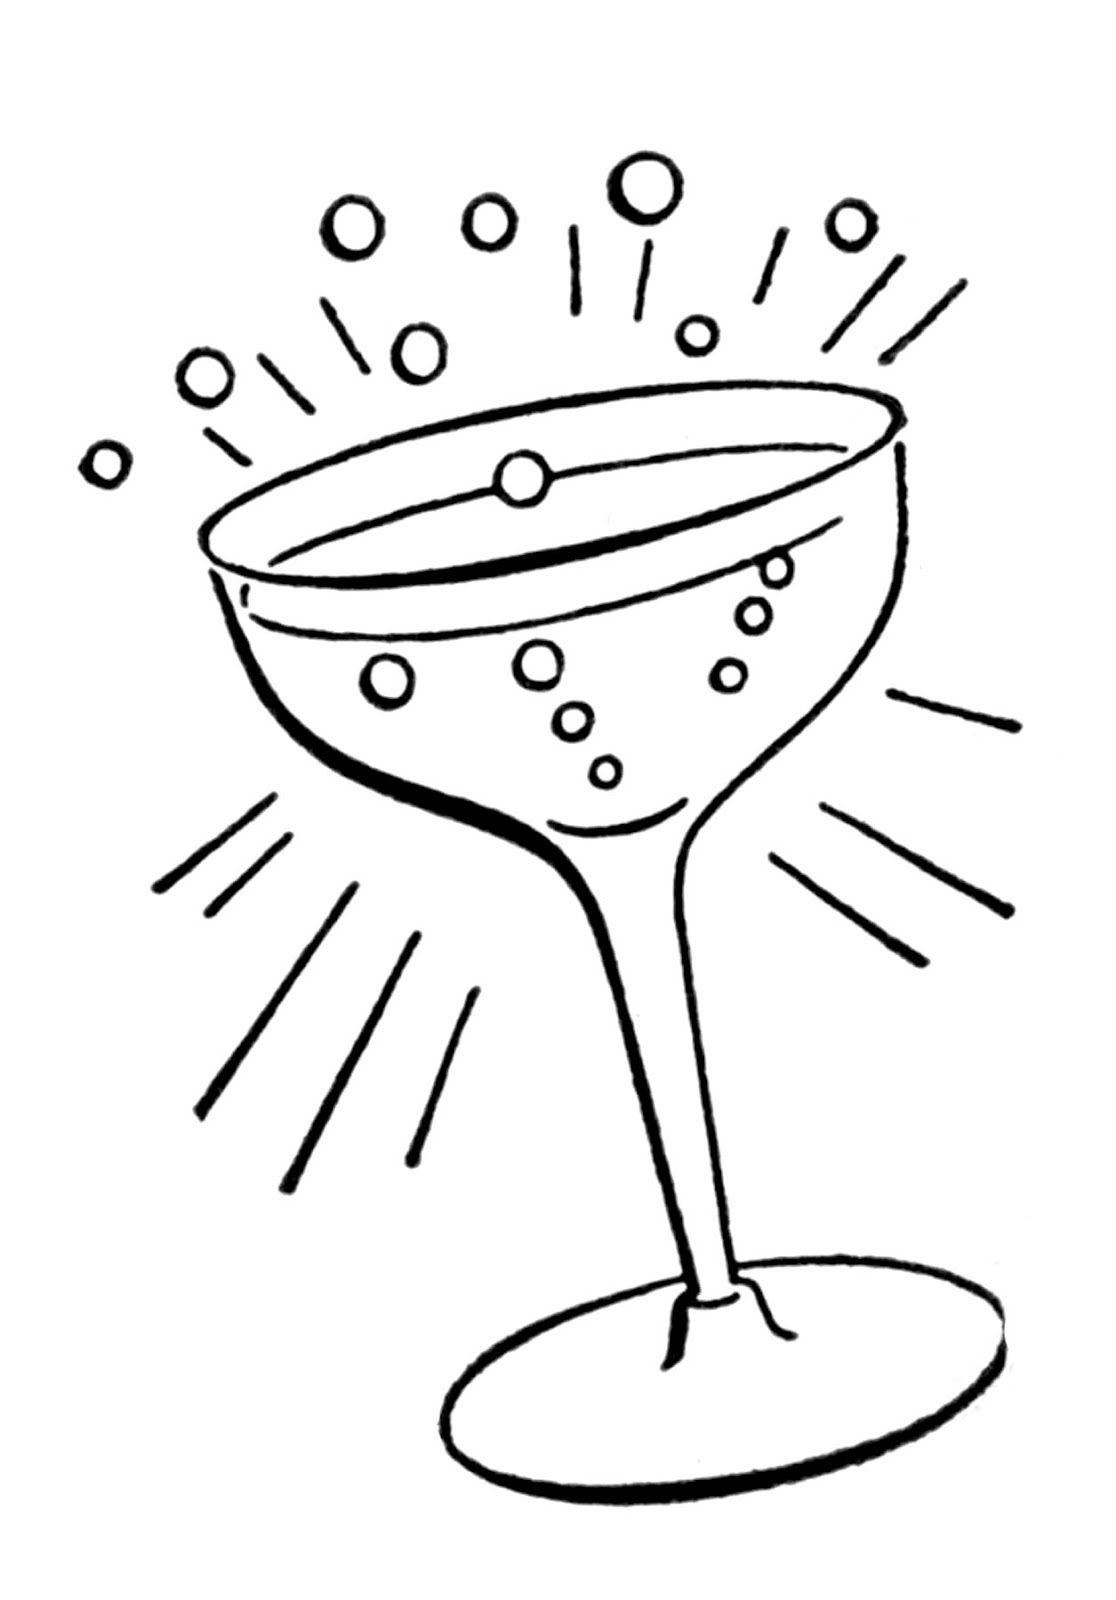 Gallery of martini shaker drawing